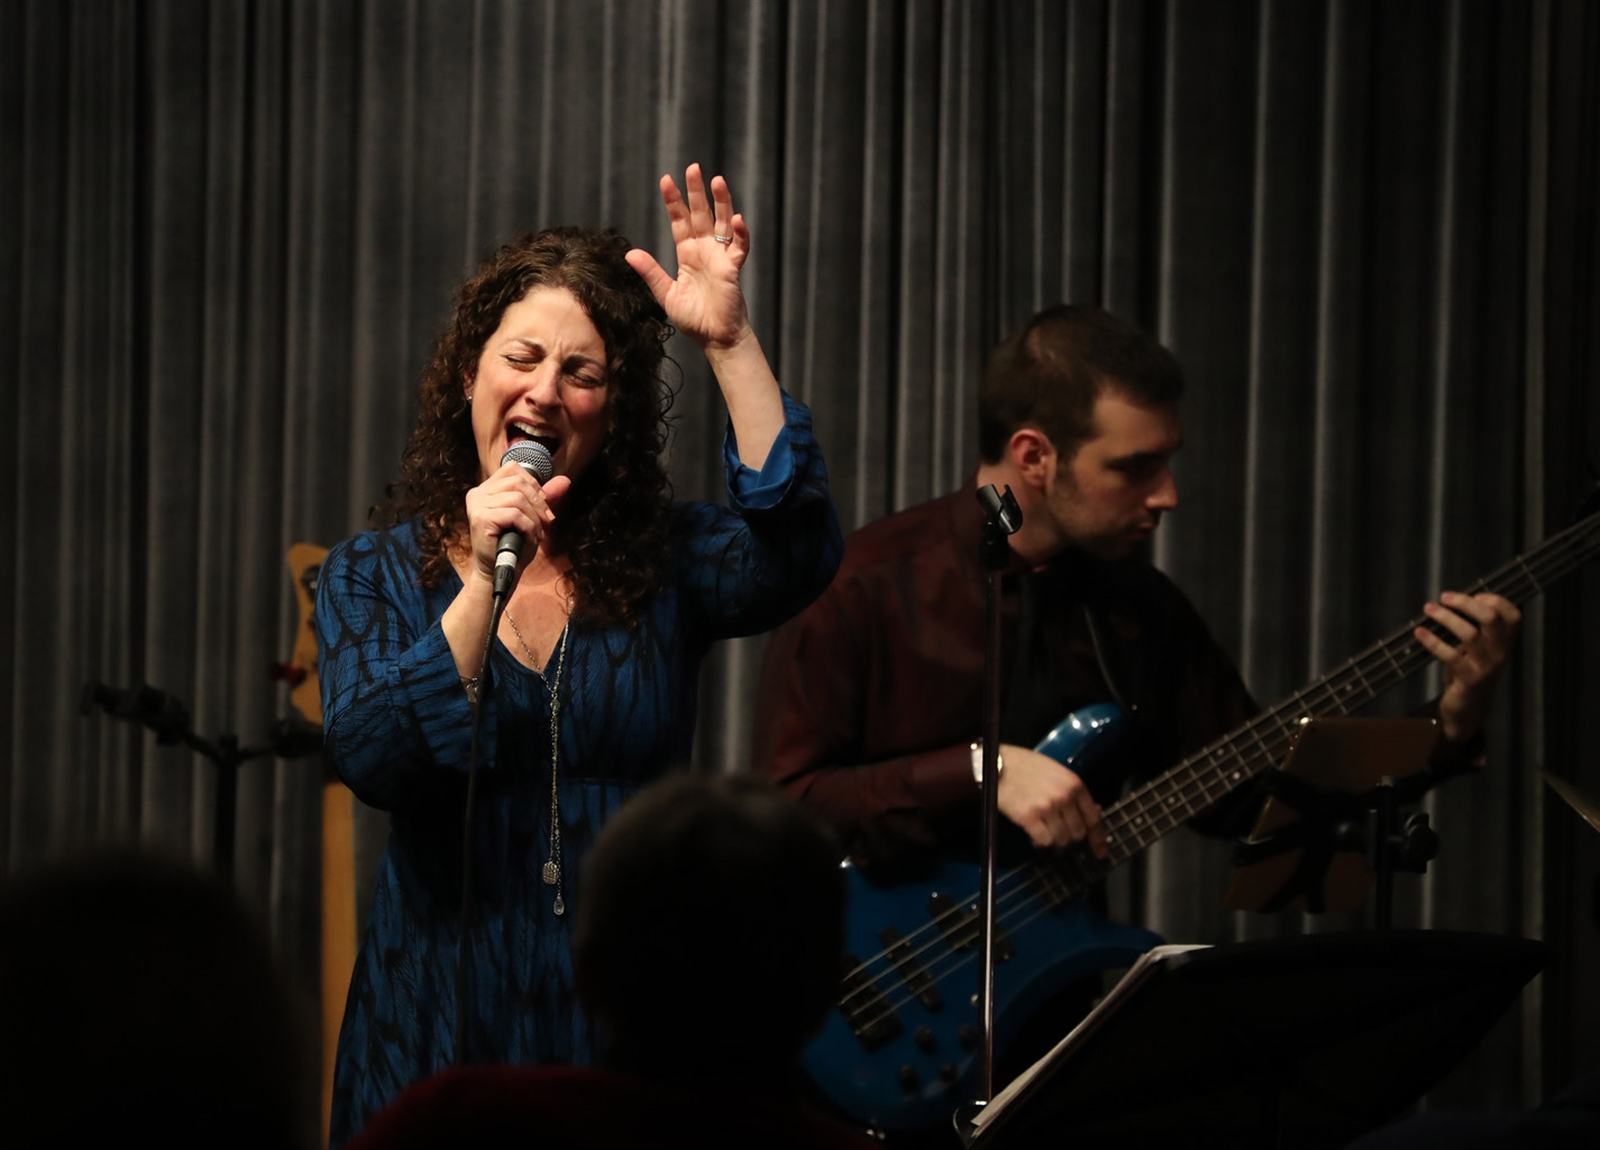 DeeAnn DiMeo Tompkins and her band perform Valentine's Day jazz songs, including songs made famous by Billie Holiday at Pausa Art House. Behind is bass guitar player Avery Weissman.